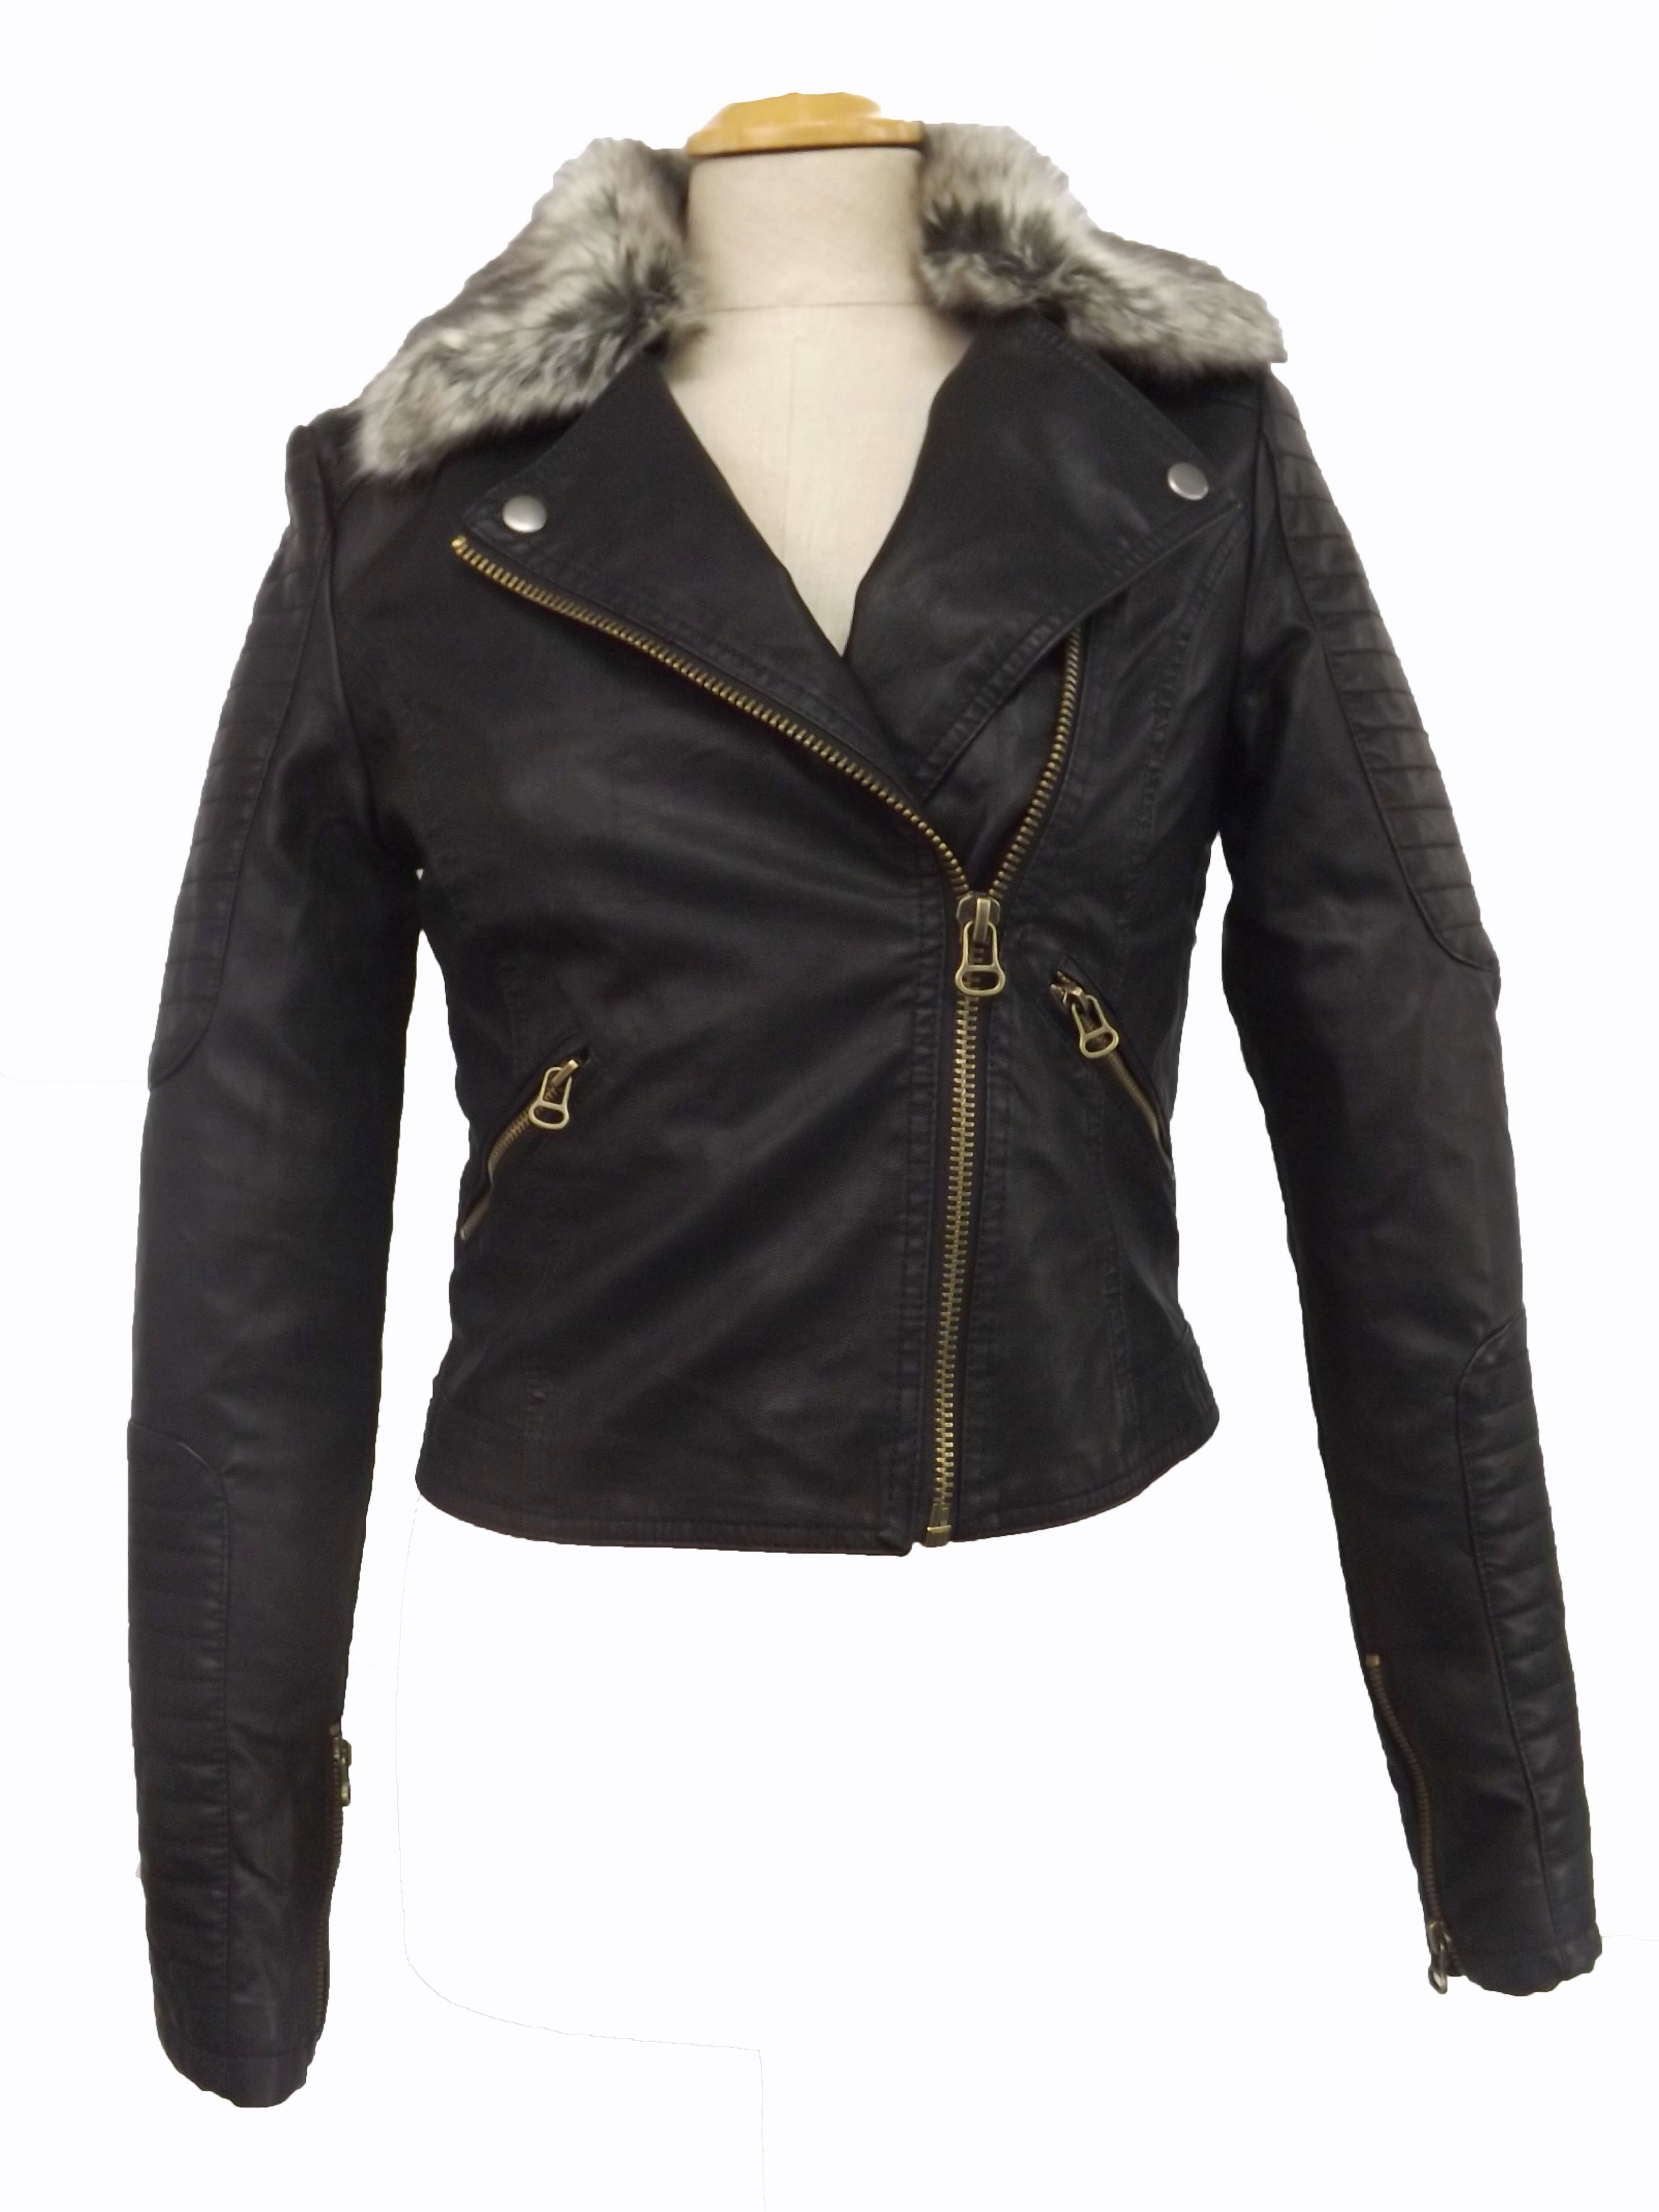 Zara Womens Faux Leather Jacket You Can Purchase It On Www